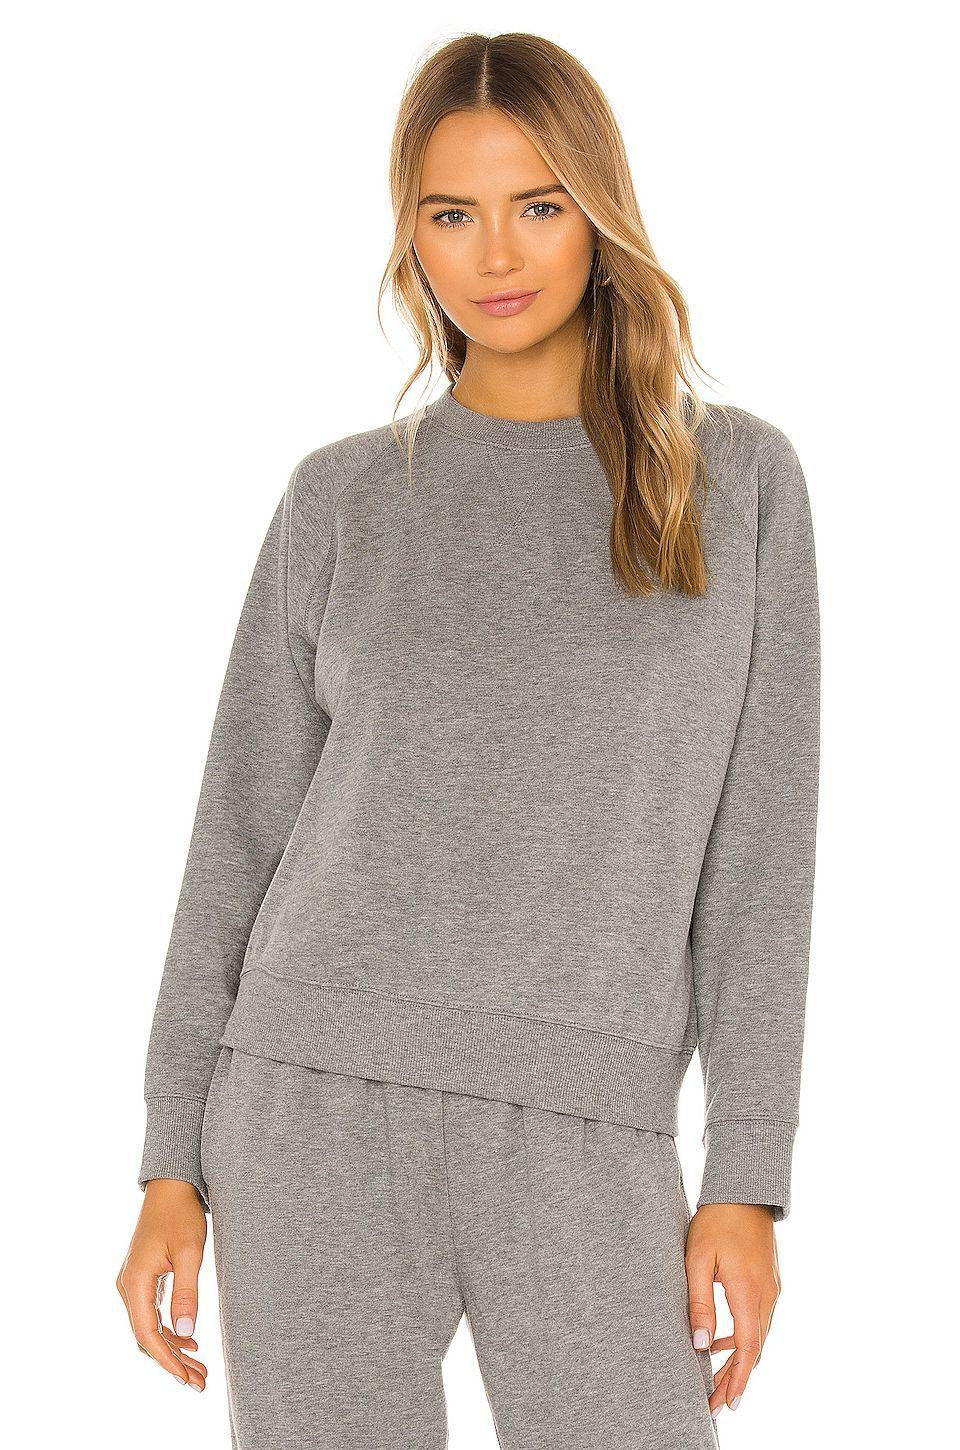 """<p><strong>Richer Poorer</strong></p><p>revolve.com</p><p><strong>$72.00</strong></p><p><a href=""""https://go.redirectingat.com?id=74968X1596630&url=https%3A%2F%2Fwww.revolve.com%2Fdp%2FRRER-WK10%2F&sref=https%3A%2F%2Fwww.goodhousekeeping.com%2Fclothing%2Fg35044369%2Fbest-matching-sweatsuits-women%2F"""" rel=""""nofollow noopener"""" target=""""_blank"""" data-ylk=""""slk:Shop Now"""" class=""""link rapid-noclick-resp"""">Shop Now</a></p><p>This fleece set is made from a mix of cotton and recycled polyester. You can also purchase the set in a camel brown color or black, and mix and match tops and bottoms. Reviewers say the <strong>sizing of the crewneck and <a href=""""https://go.redirectingat.com?id=74968X1596630&url=https%3A%2F%2Fwww.revolve.com%2Fricher-poorer-recycled-fleece-pant-in-heather-grey%2Fdp%2FRRER-WP7%2F&sref=https%3A%2F%2Fwww.goodhousekeeping.com%2Fclothing%2Fg35044369%2Fbest-matching-sweatsuits-women%2F"""" rel=""""nofollow noopener"""" target=""""_blank"""" data-ylk=""""slk:matching recycled sweatpants"""" class=""""link rapid-noclick-resp"""">matching recycled sweatpants</a> is a true fit</strong>. <br></p>"""